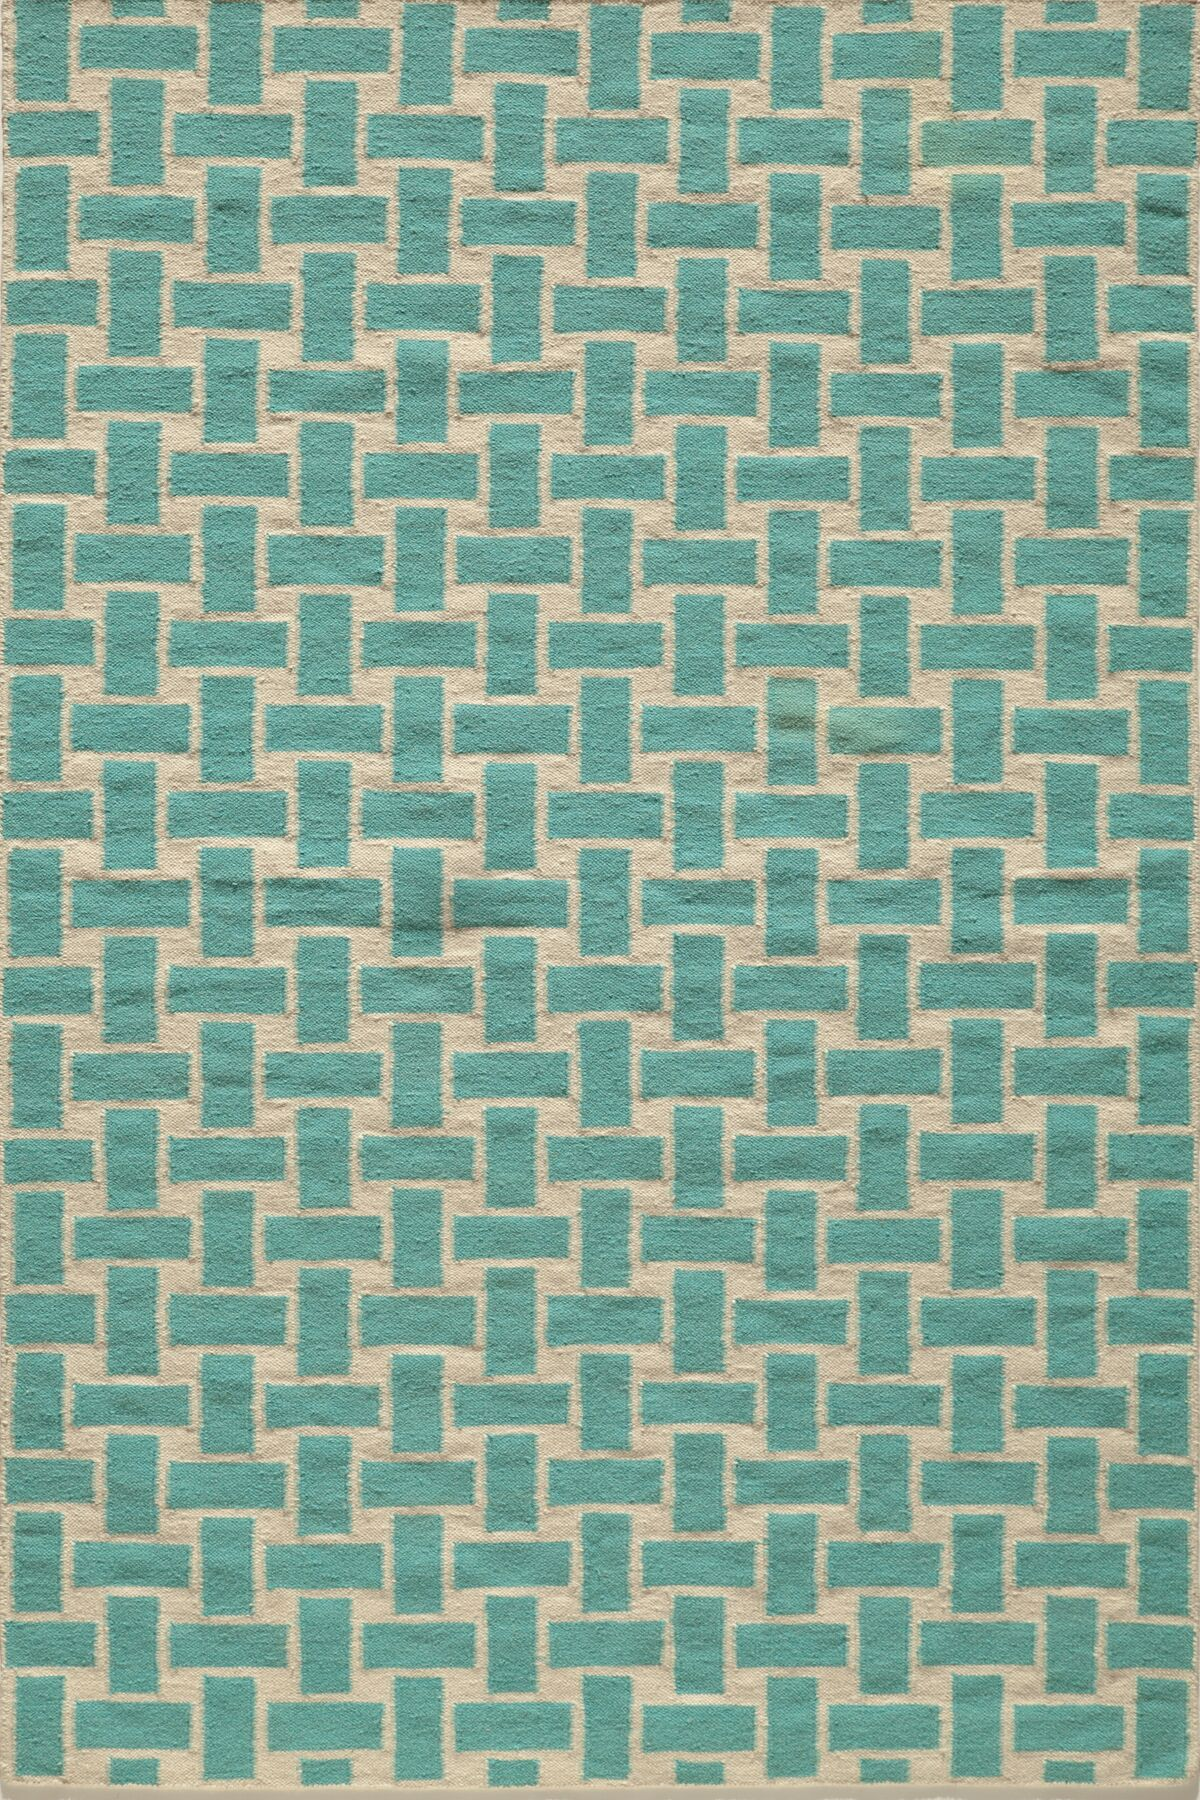 Hagler Hand-Woven Aqua Area Rug Rug Size: Rectangle 5' x 8'